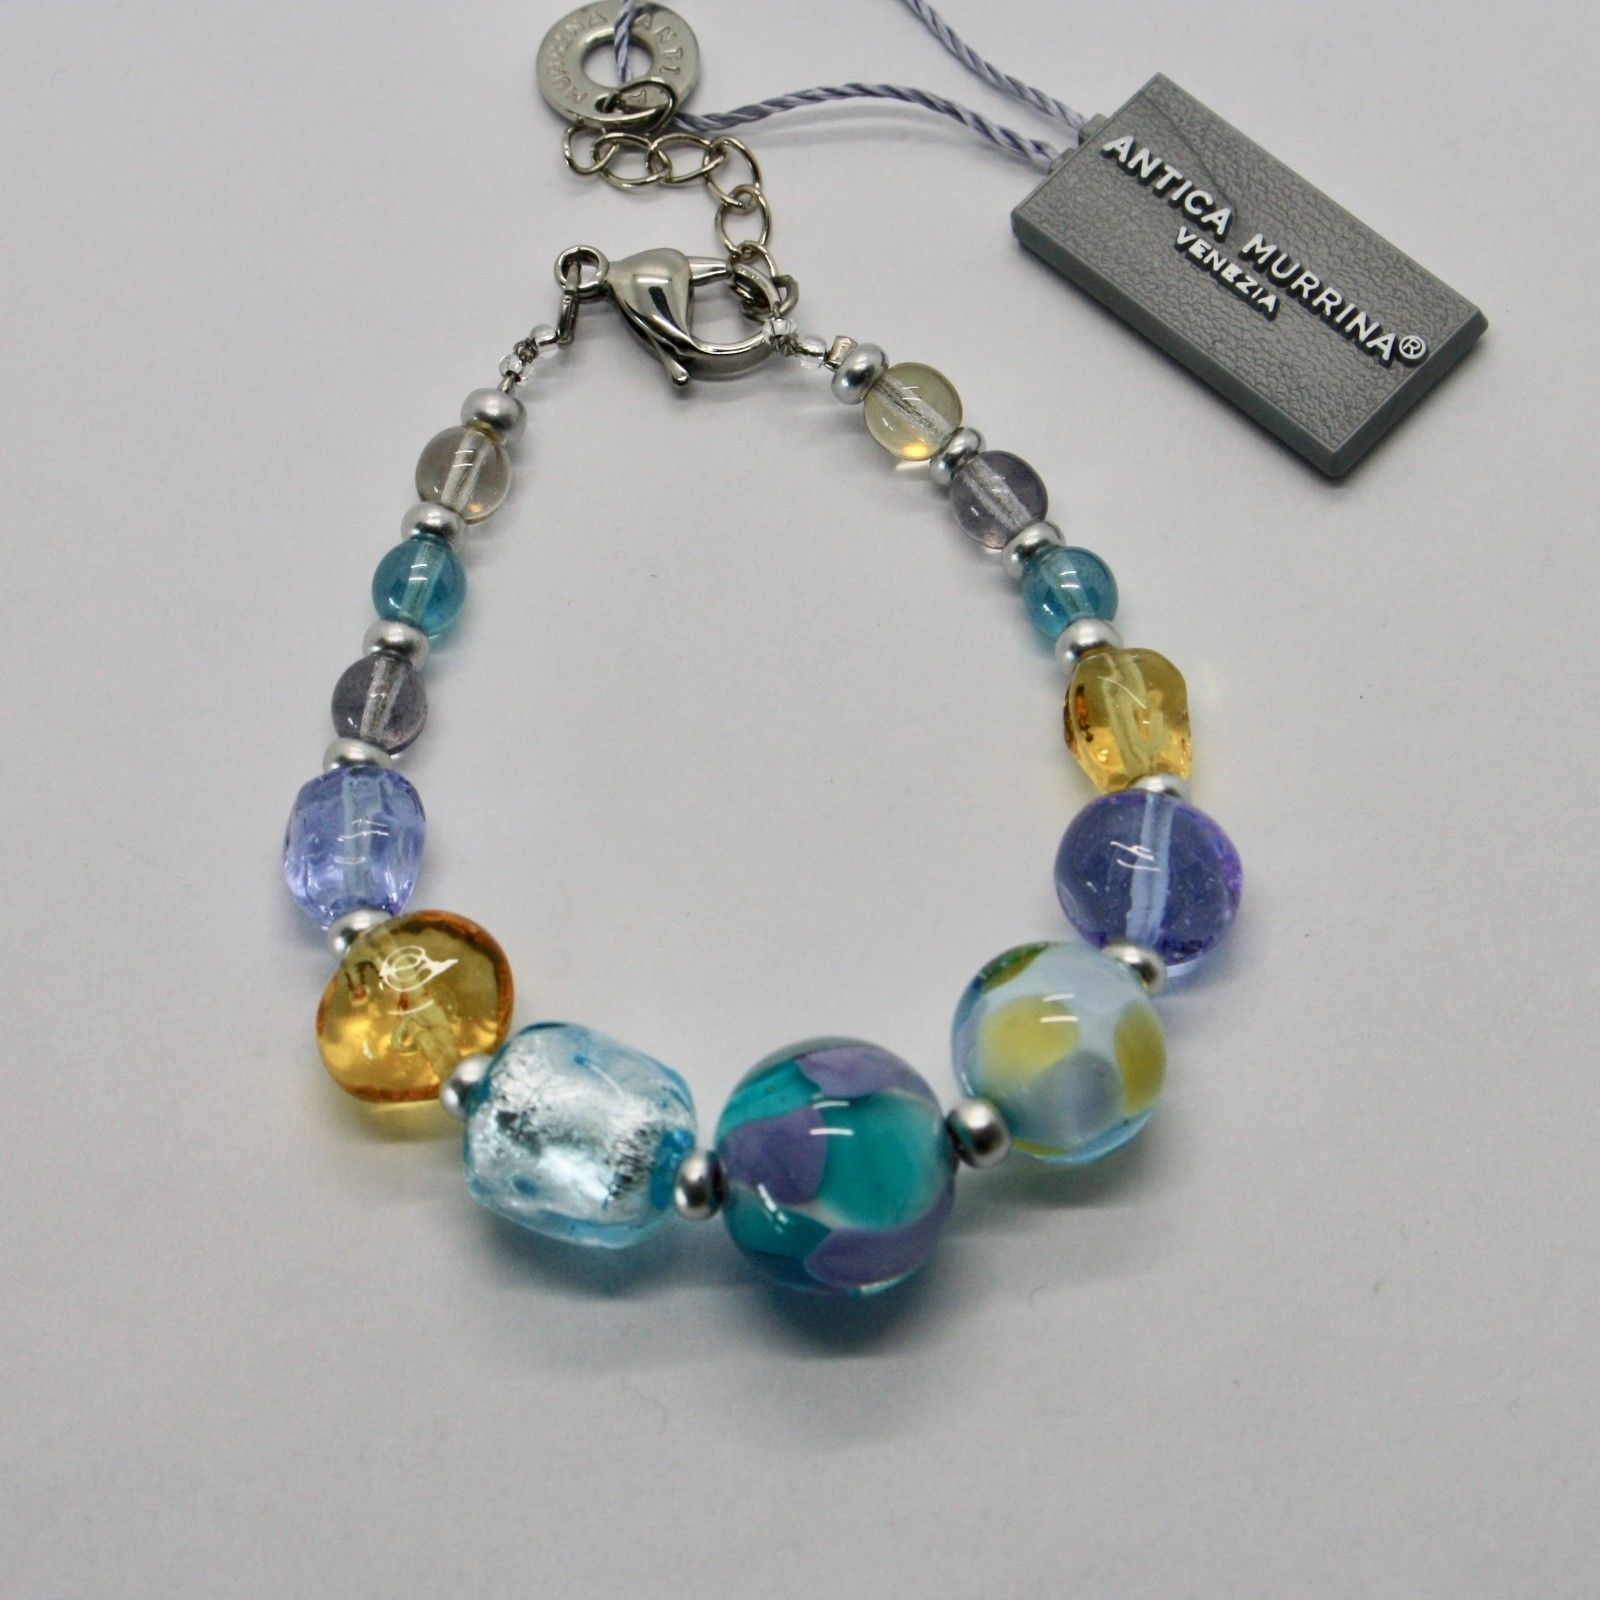 BRACELET ANTICA MURRINA VENEZIA WITH MURANO GLASS BLUE YELLOW PURPLE BR799A07